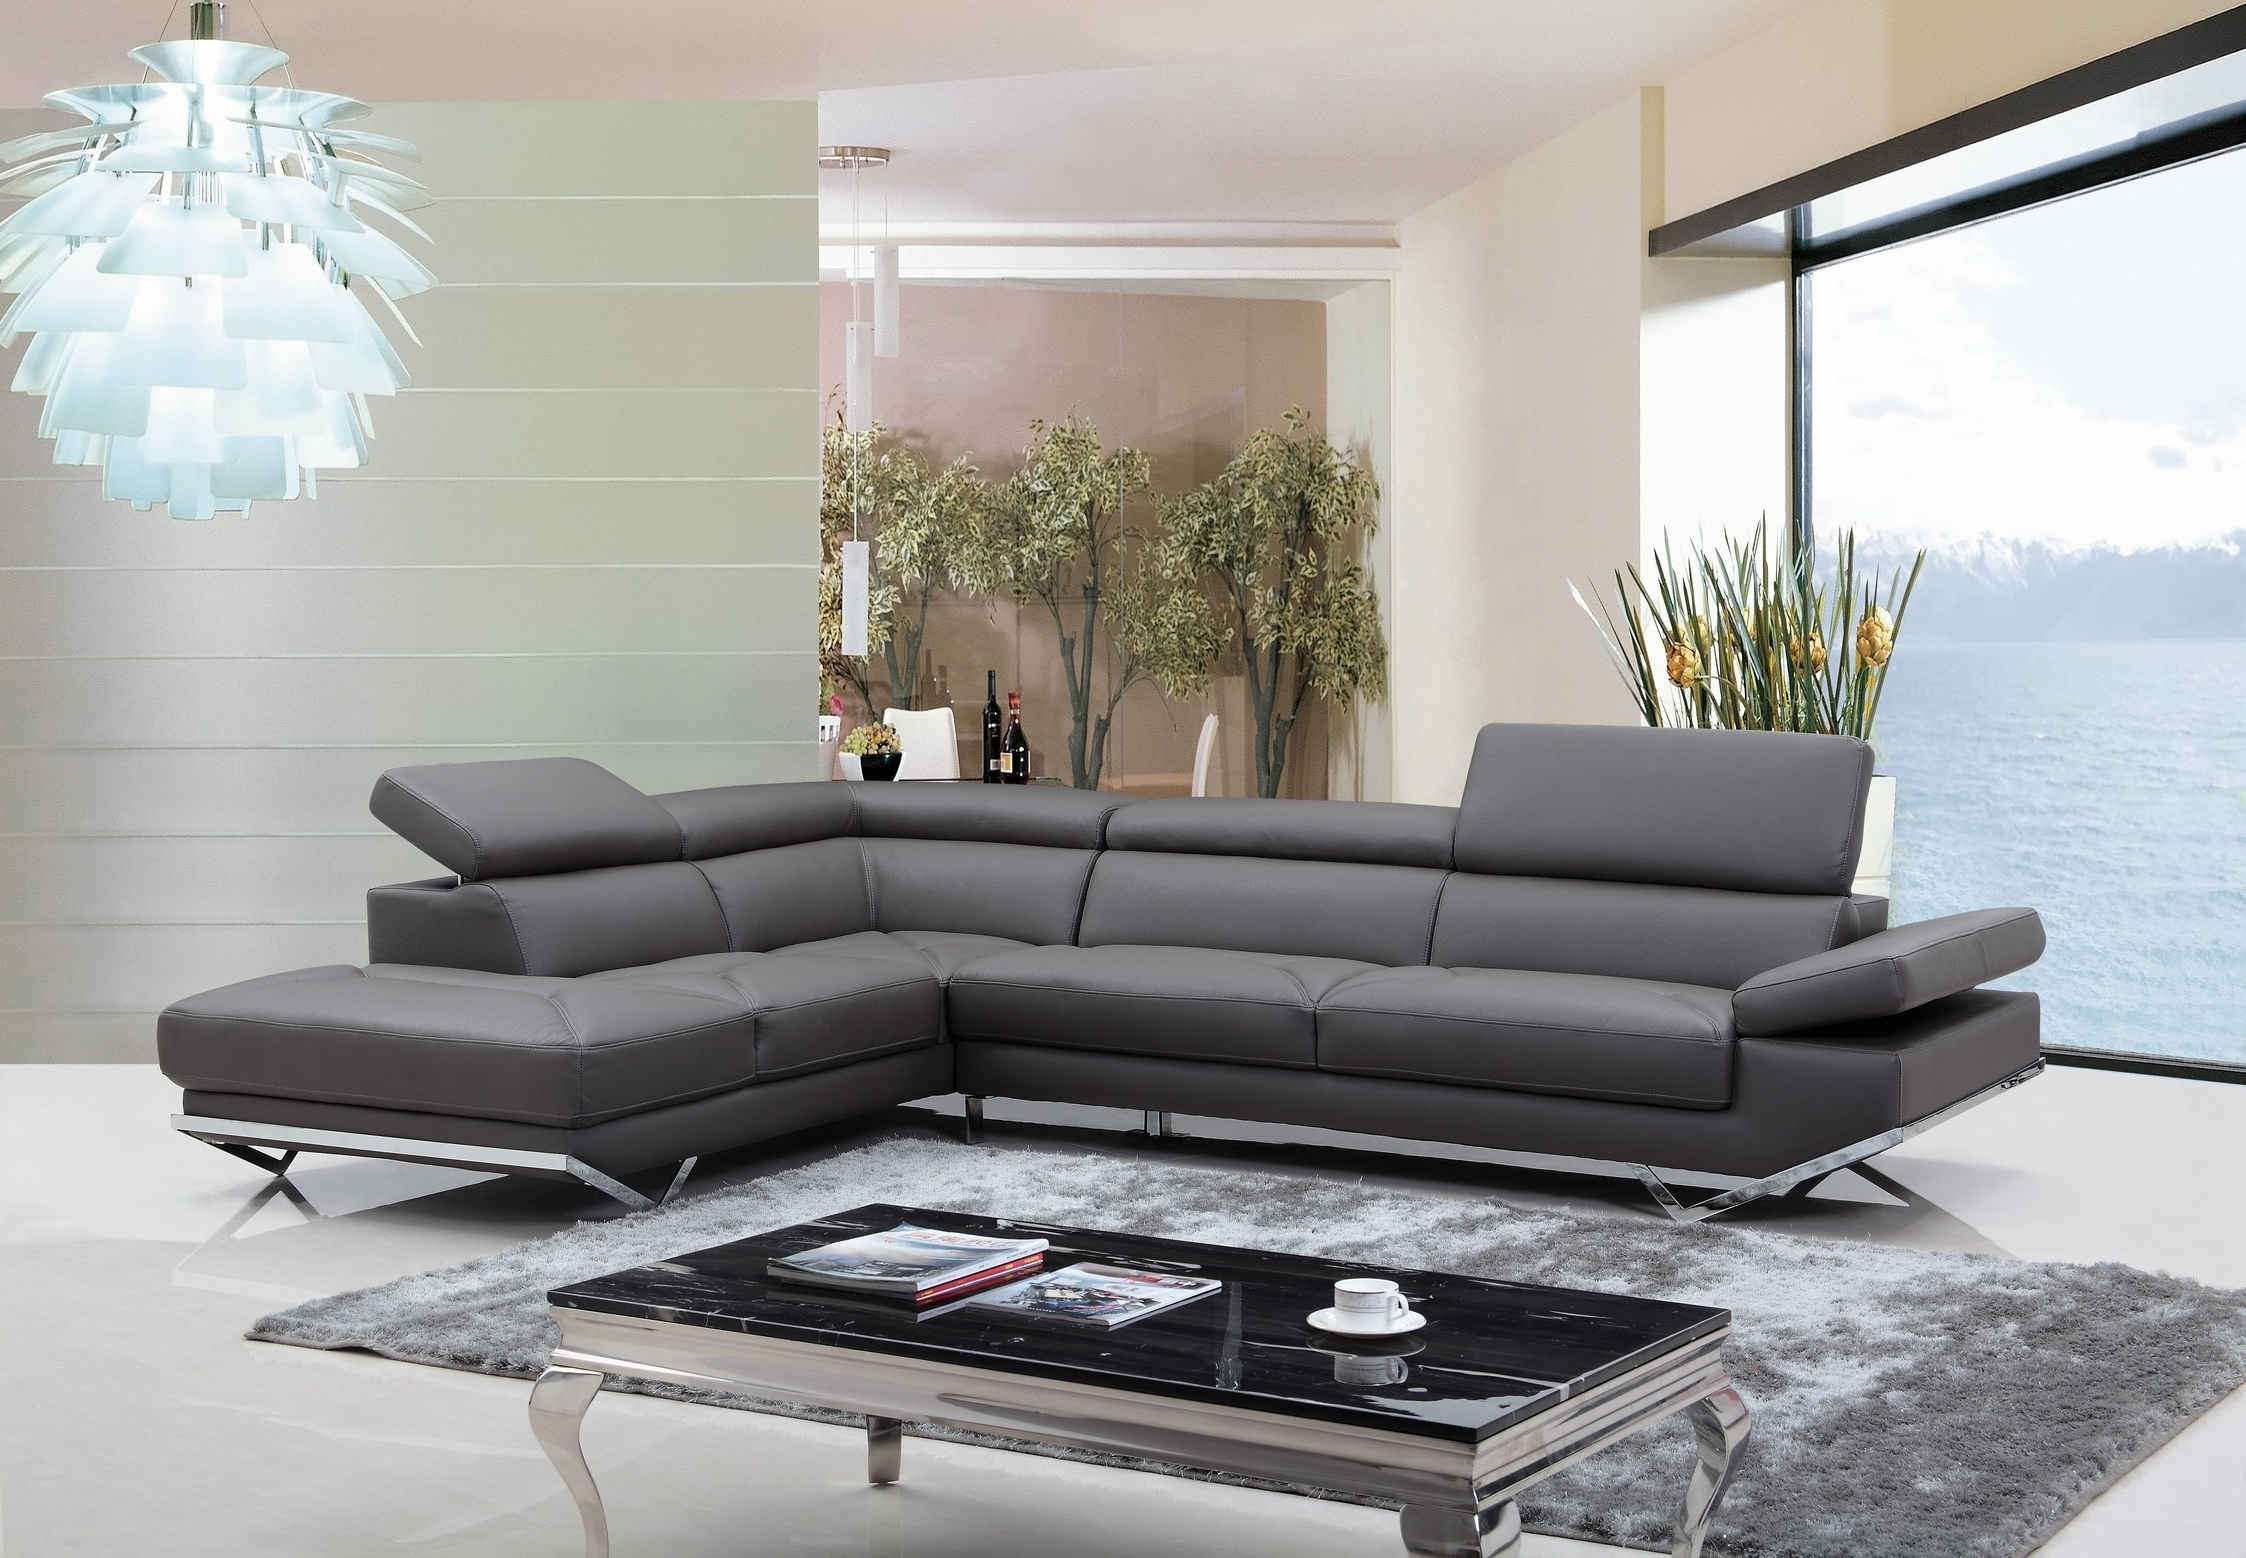 Sofa Modernr Ideas For Living Room Hupehome Contemporary Furniture Regarding Most Current High Point Nc Sectional Sofas (View 5 of 20)